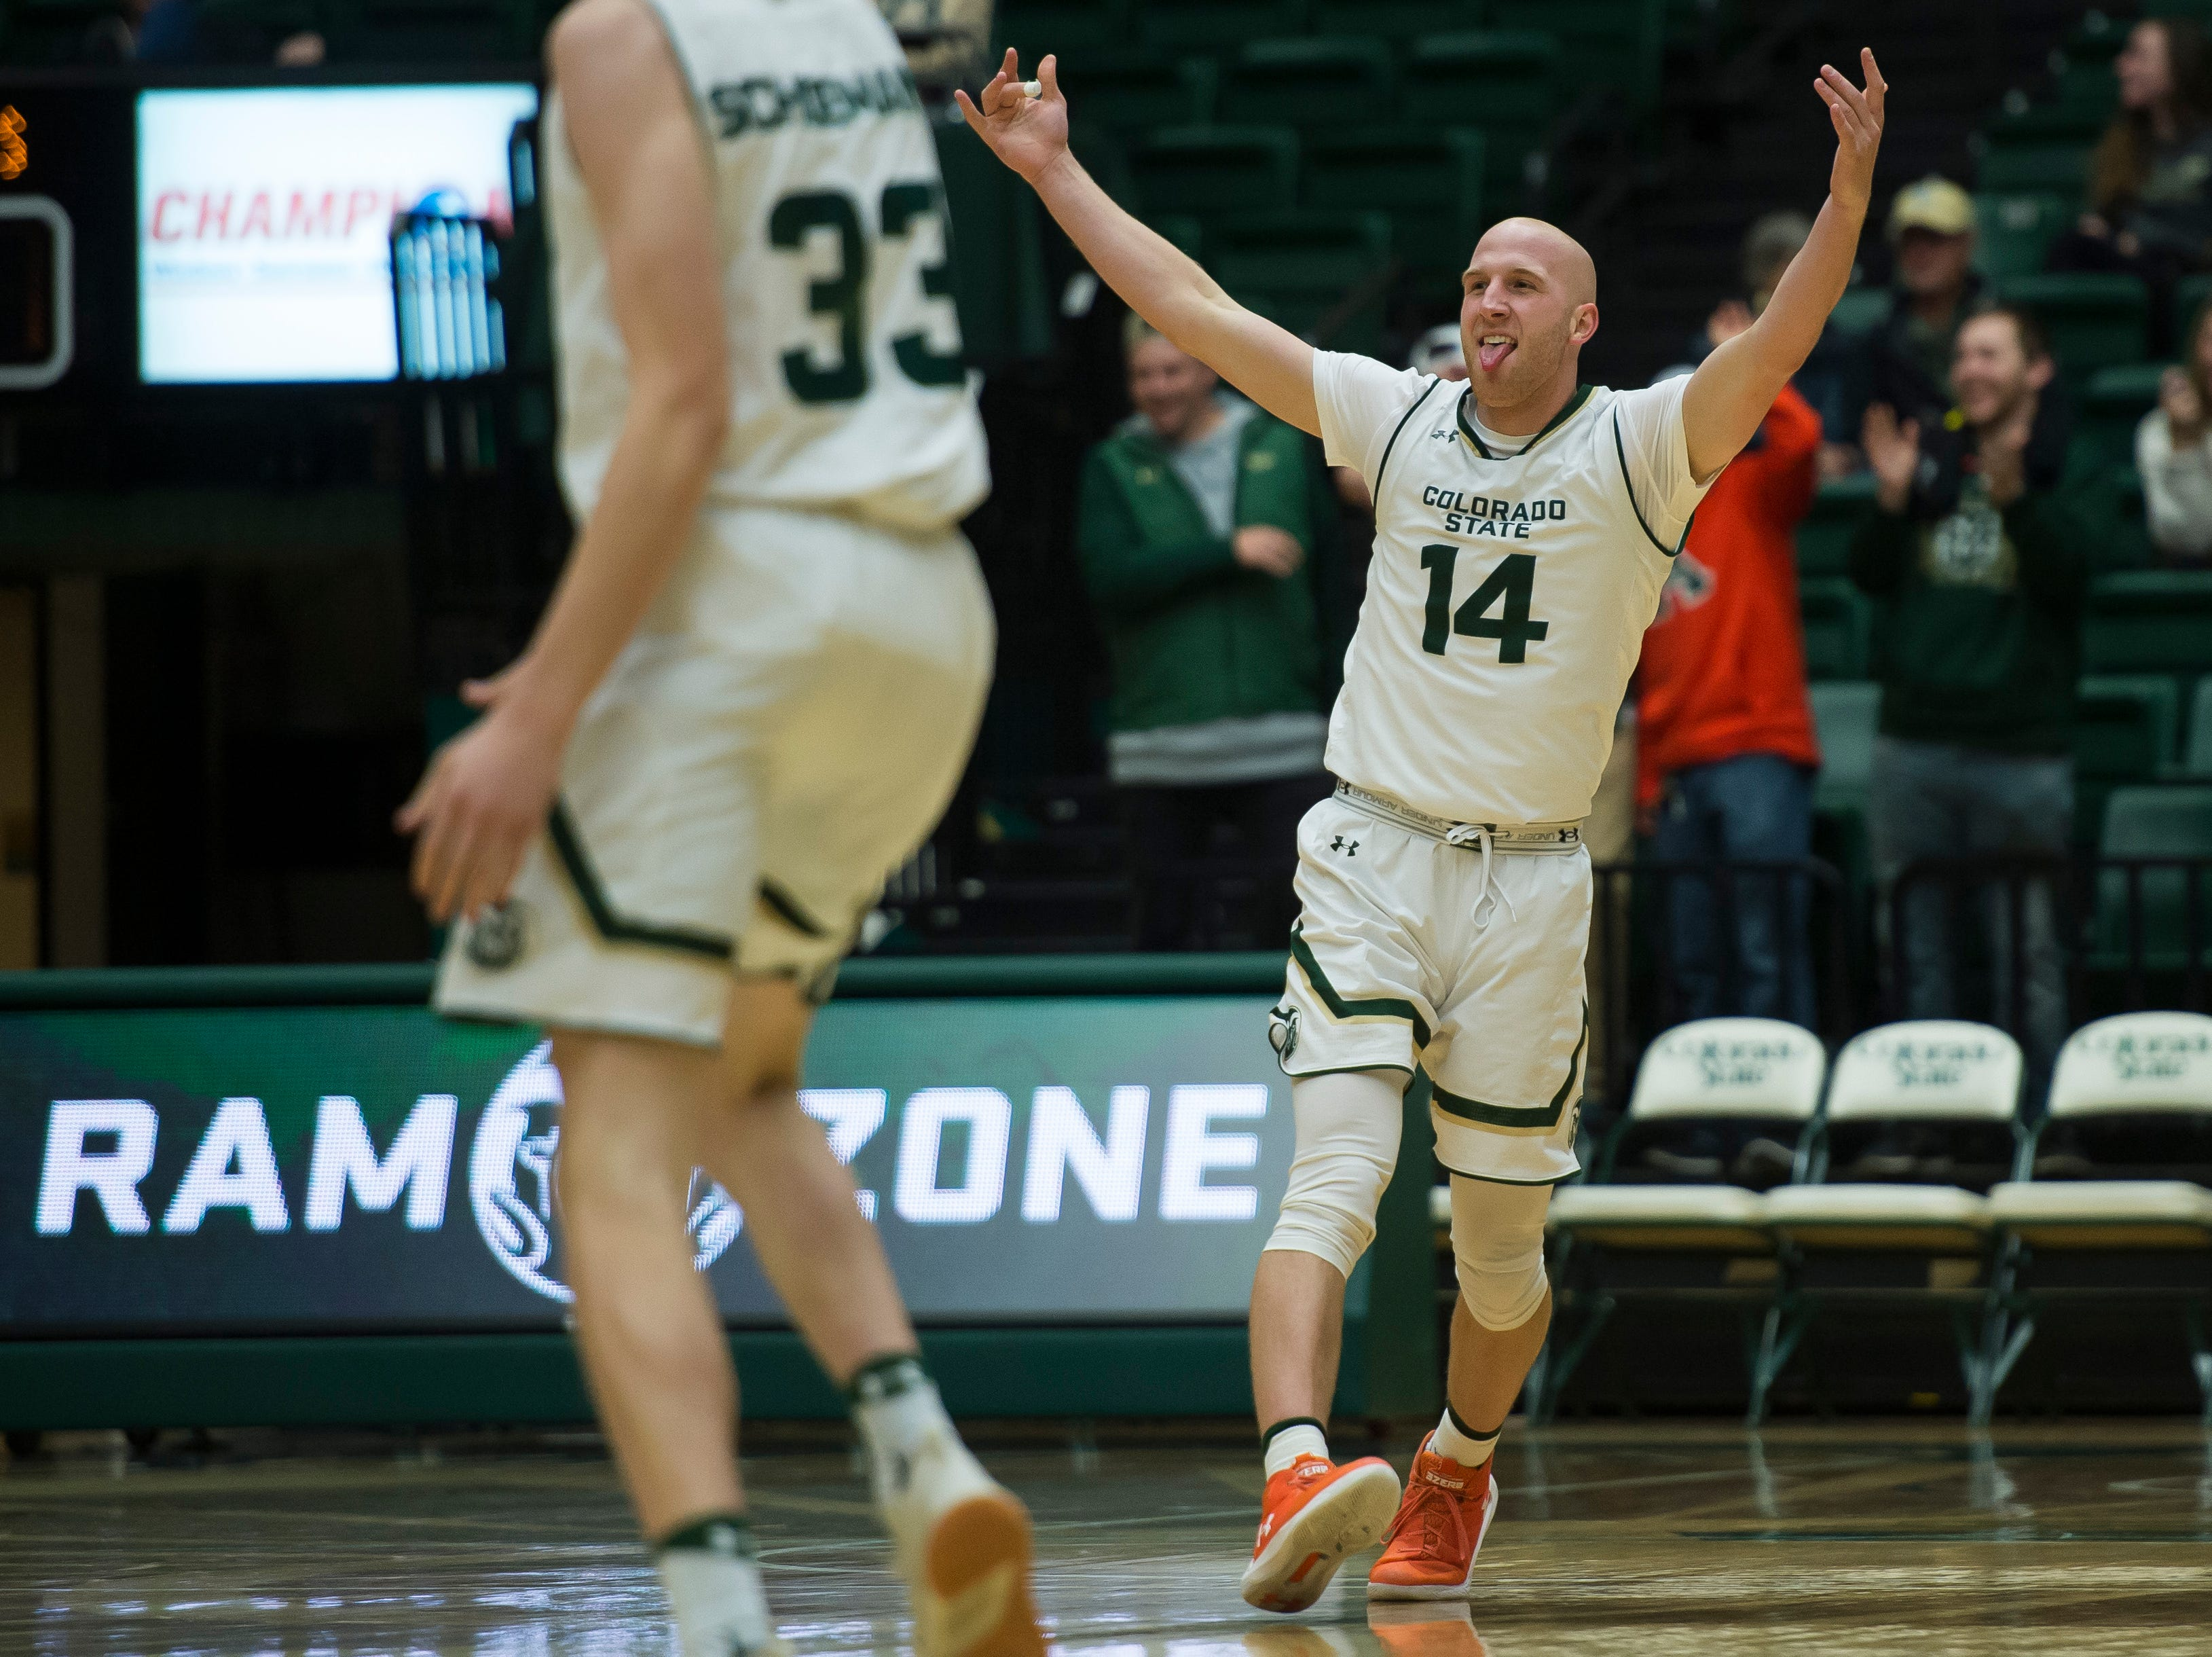 Colorado State University senior guard Robbie Berwick (14) reacts after throwing a no-look pass that resulted in a three-pointer during a game against Colorado Christian University on Wednesday, Nov. 7, 2018, at Moby Arena in Fort Collins, Colo.